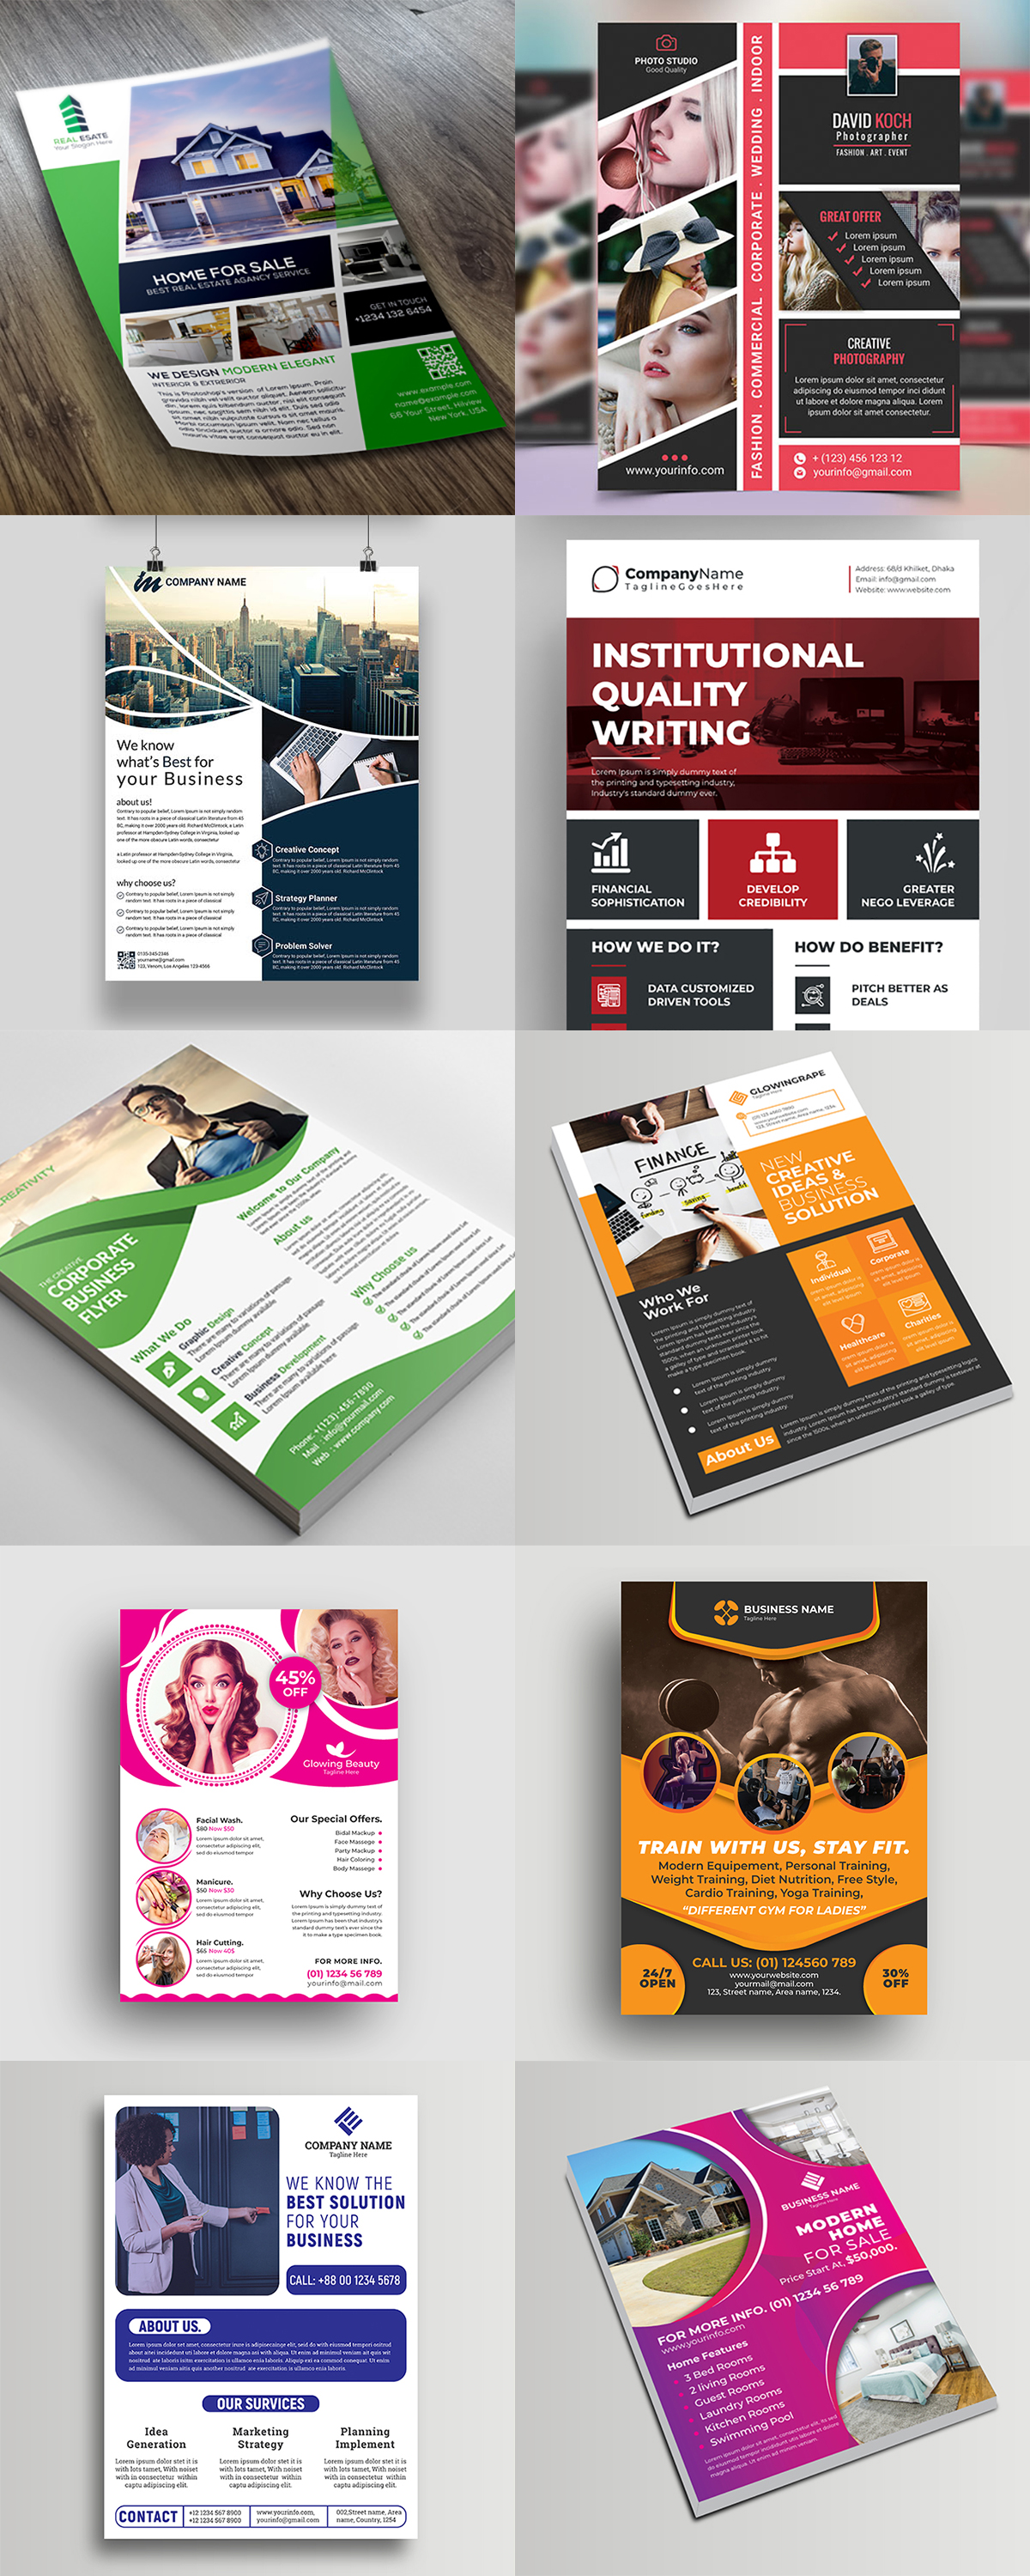 120 Concert Flyer Templates Bundle with Extended License - images 5